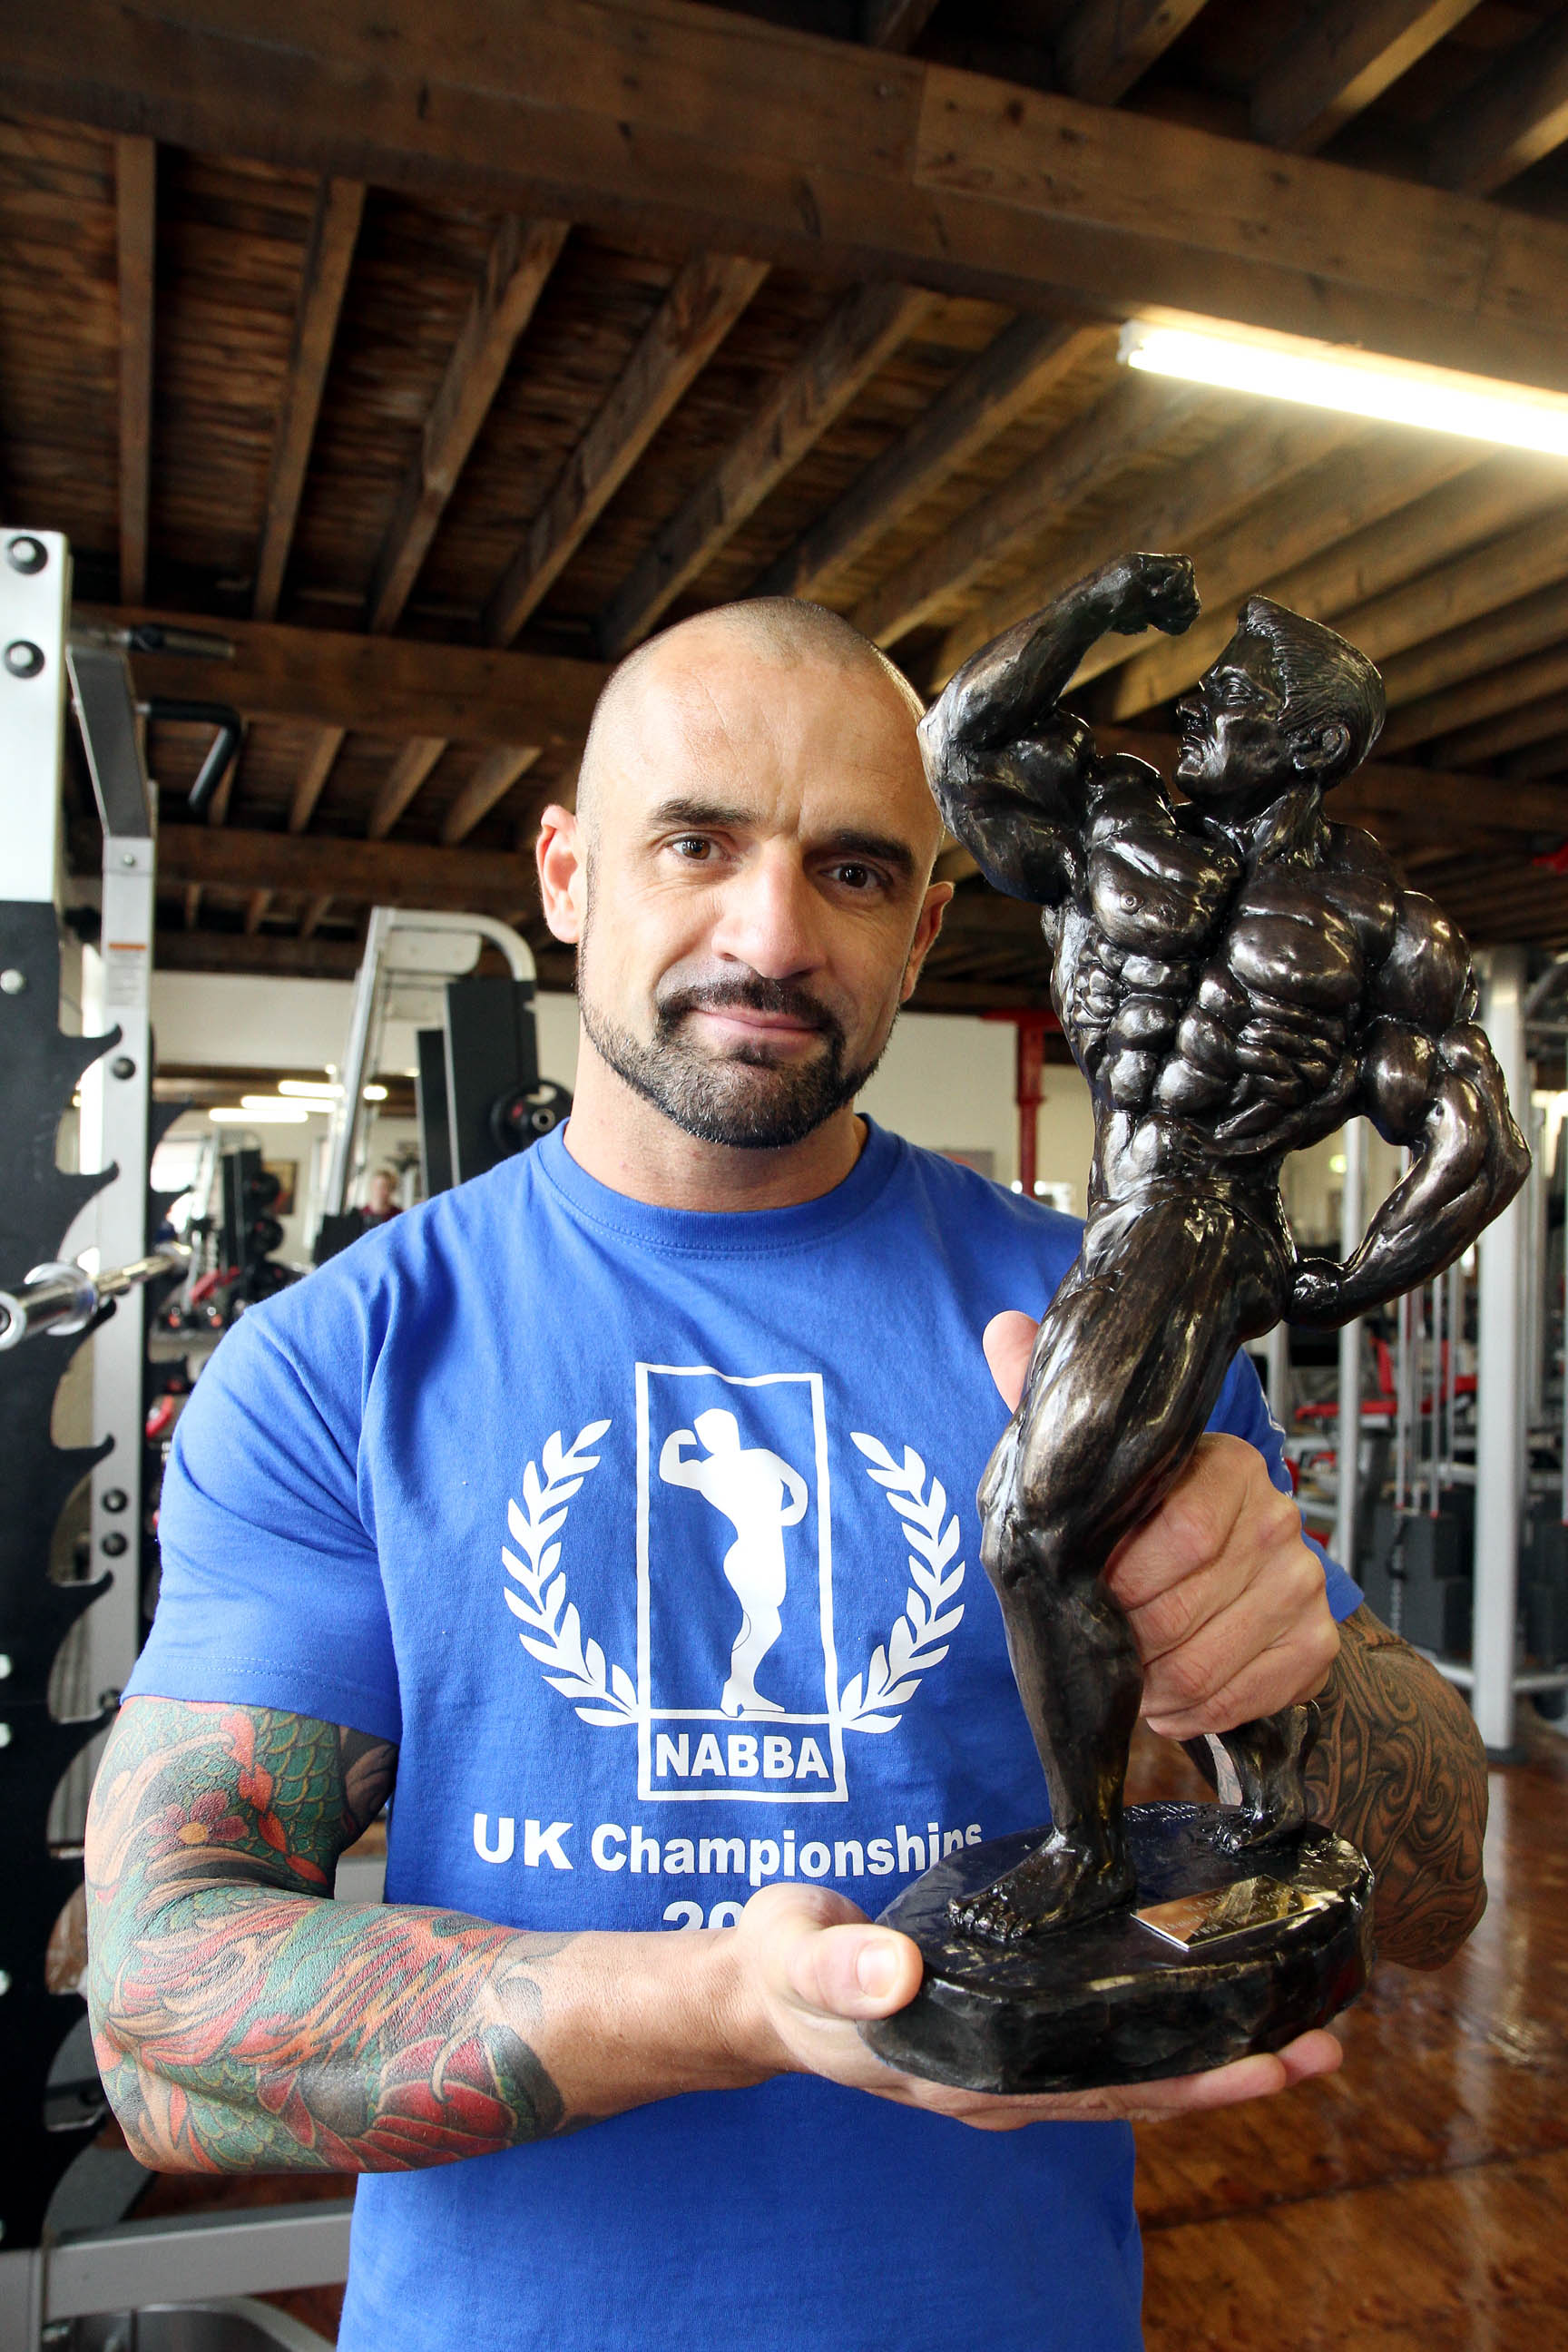 Bodybuilder's steroids message: 'stay natural for safe muscle gain'